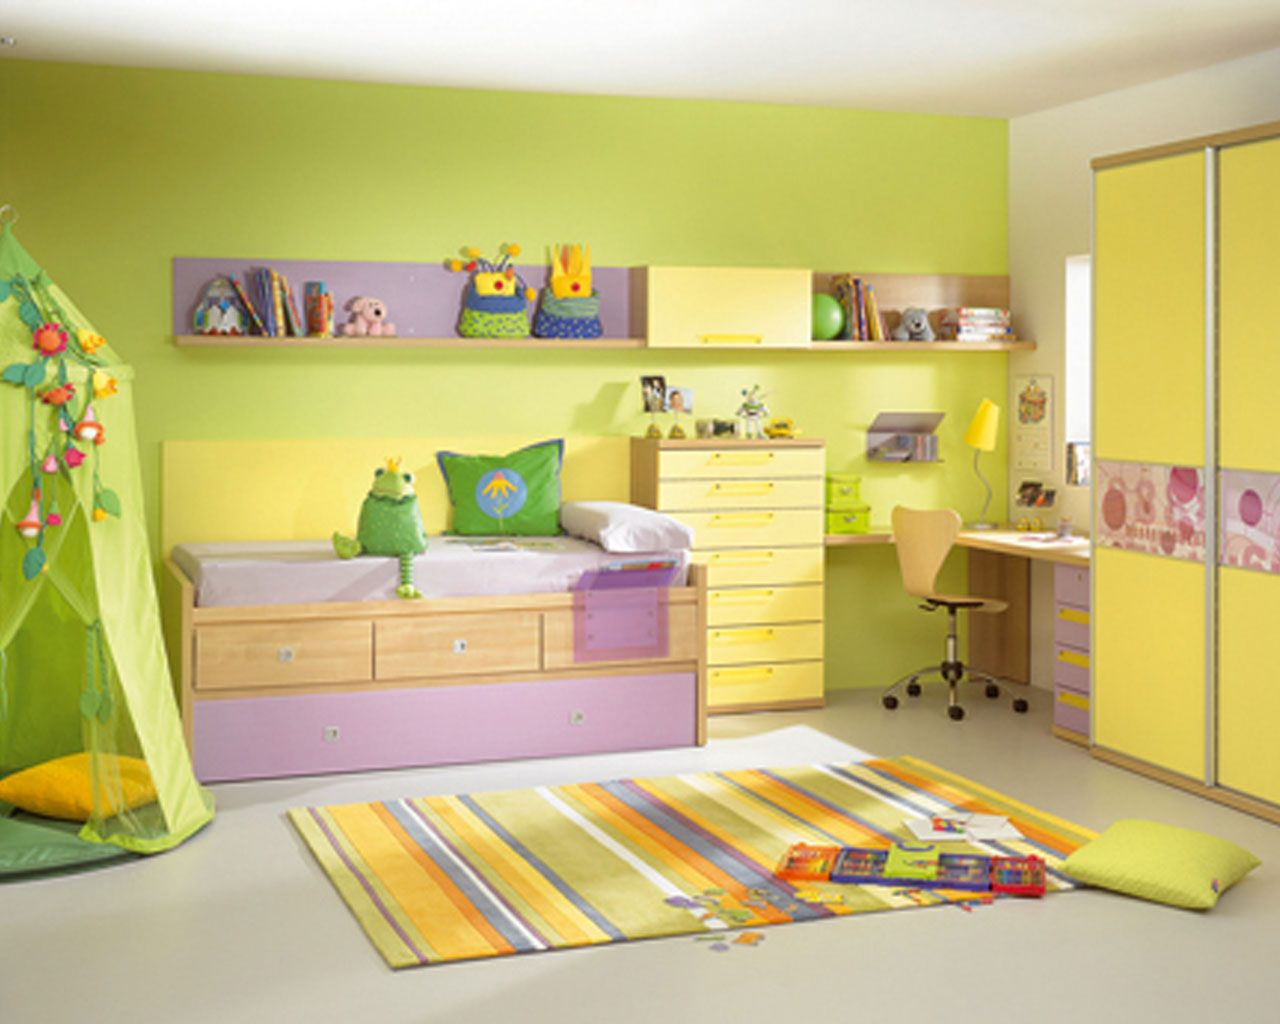 Lime green and white themed kids room paint ideas with simple brown wood bed frame that have - Colors for kids room ...